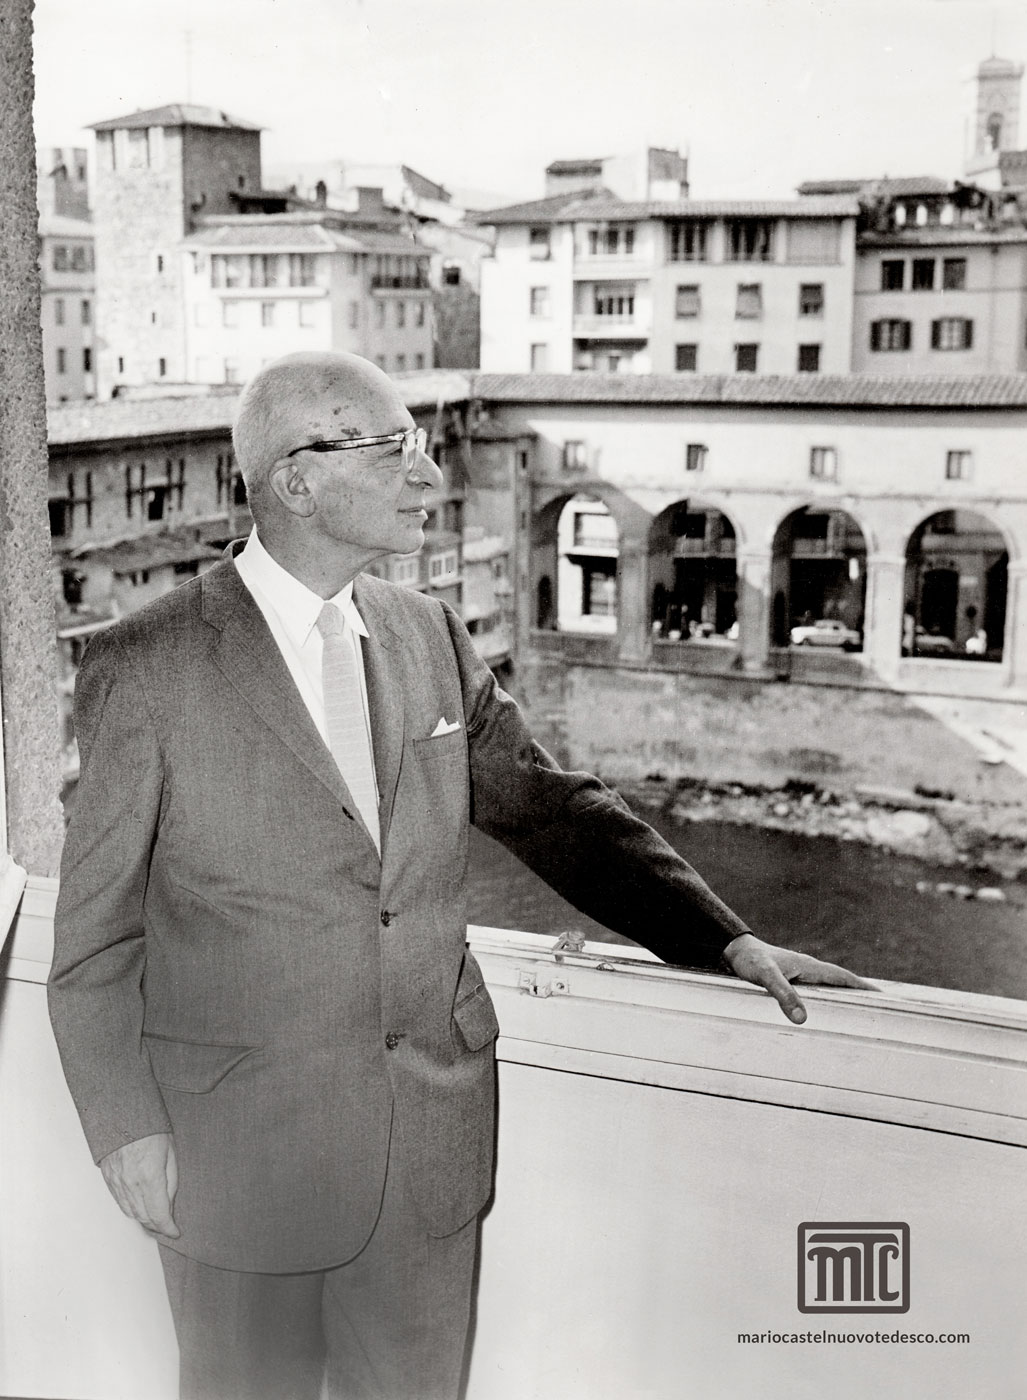 MTC at his apartment in Florence, 1961